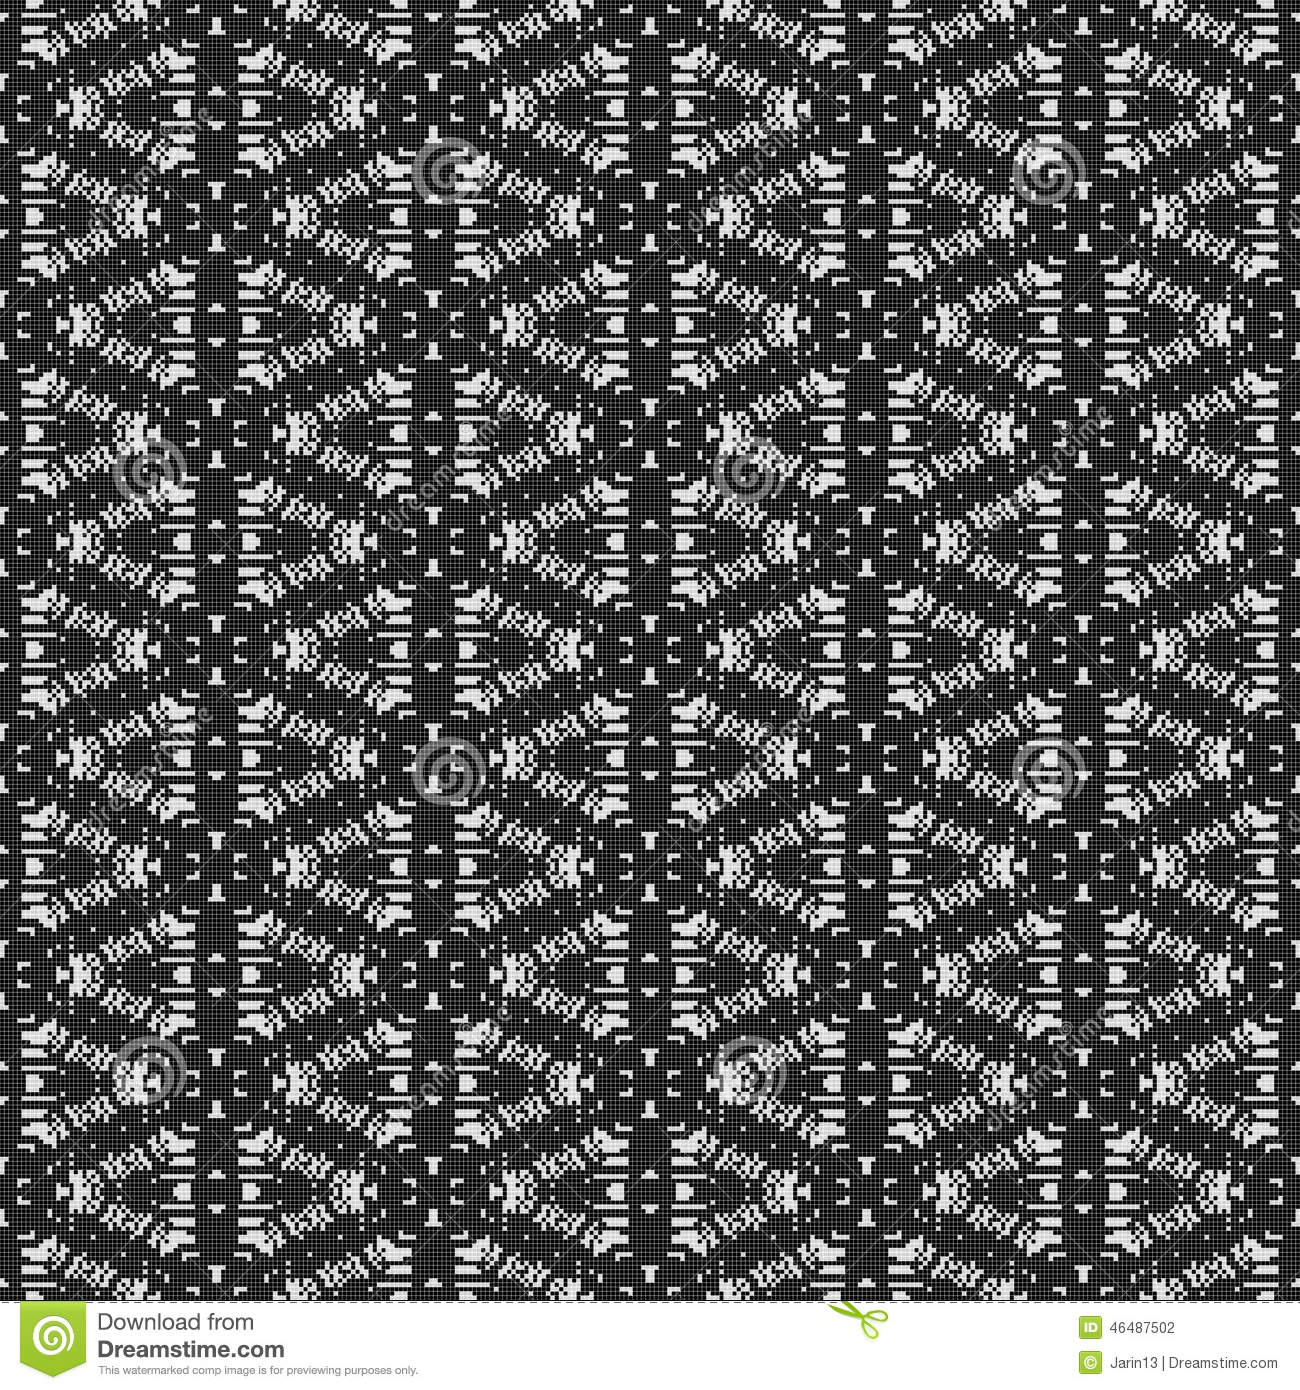 White curtain texture - Black And White Curtain Lace Texture